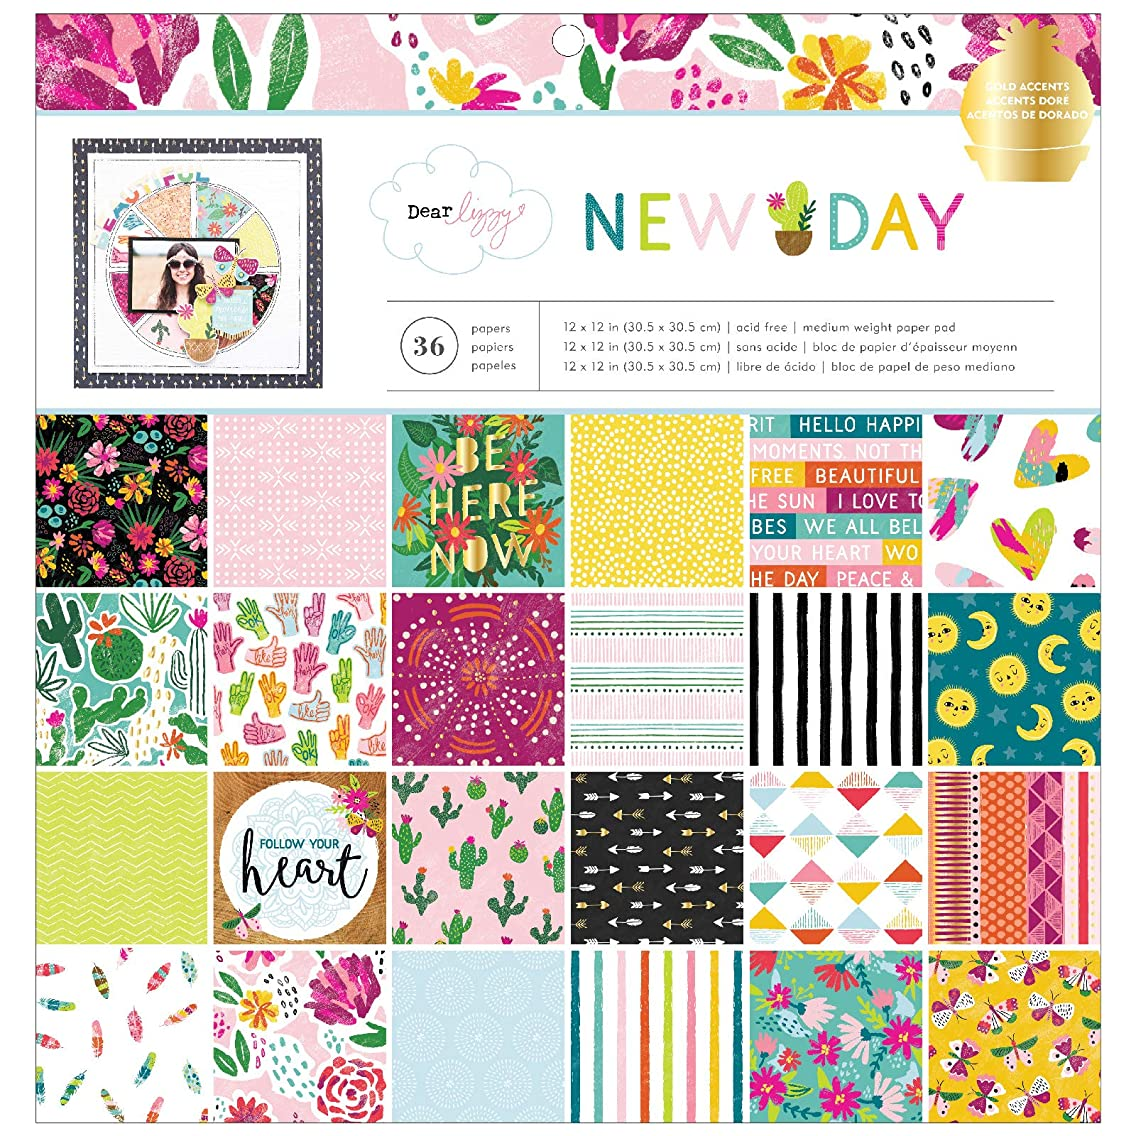 Dear Lizzy 349517 New Day Paper Multicolor eluthkm92